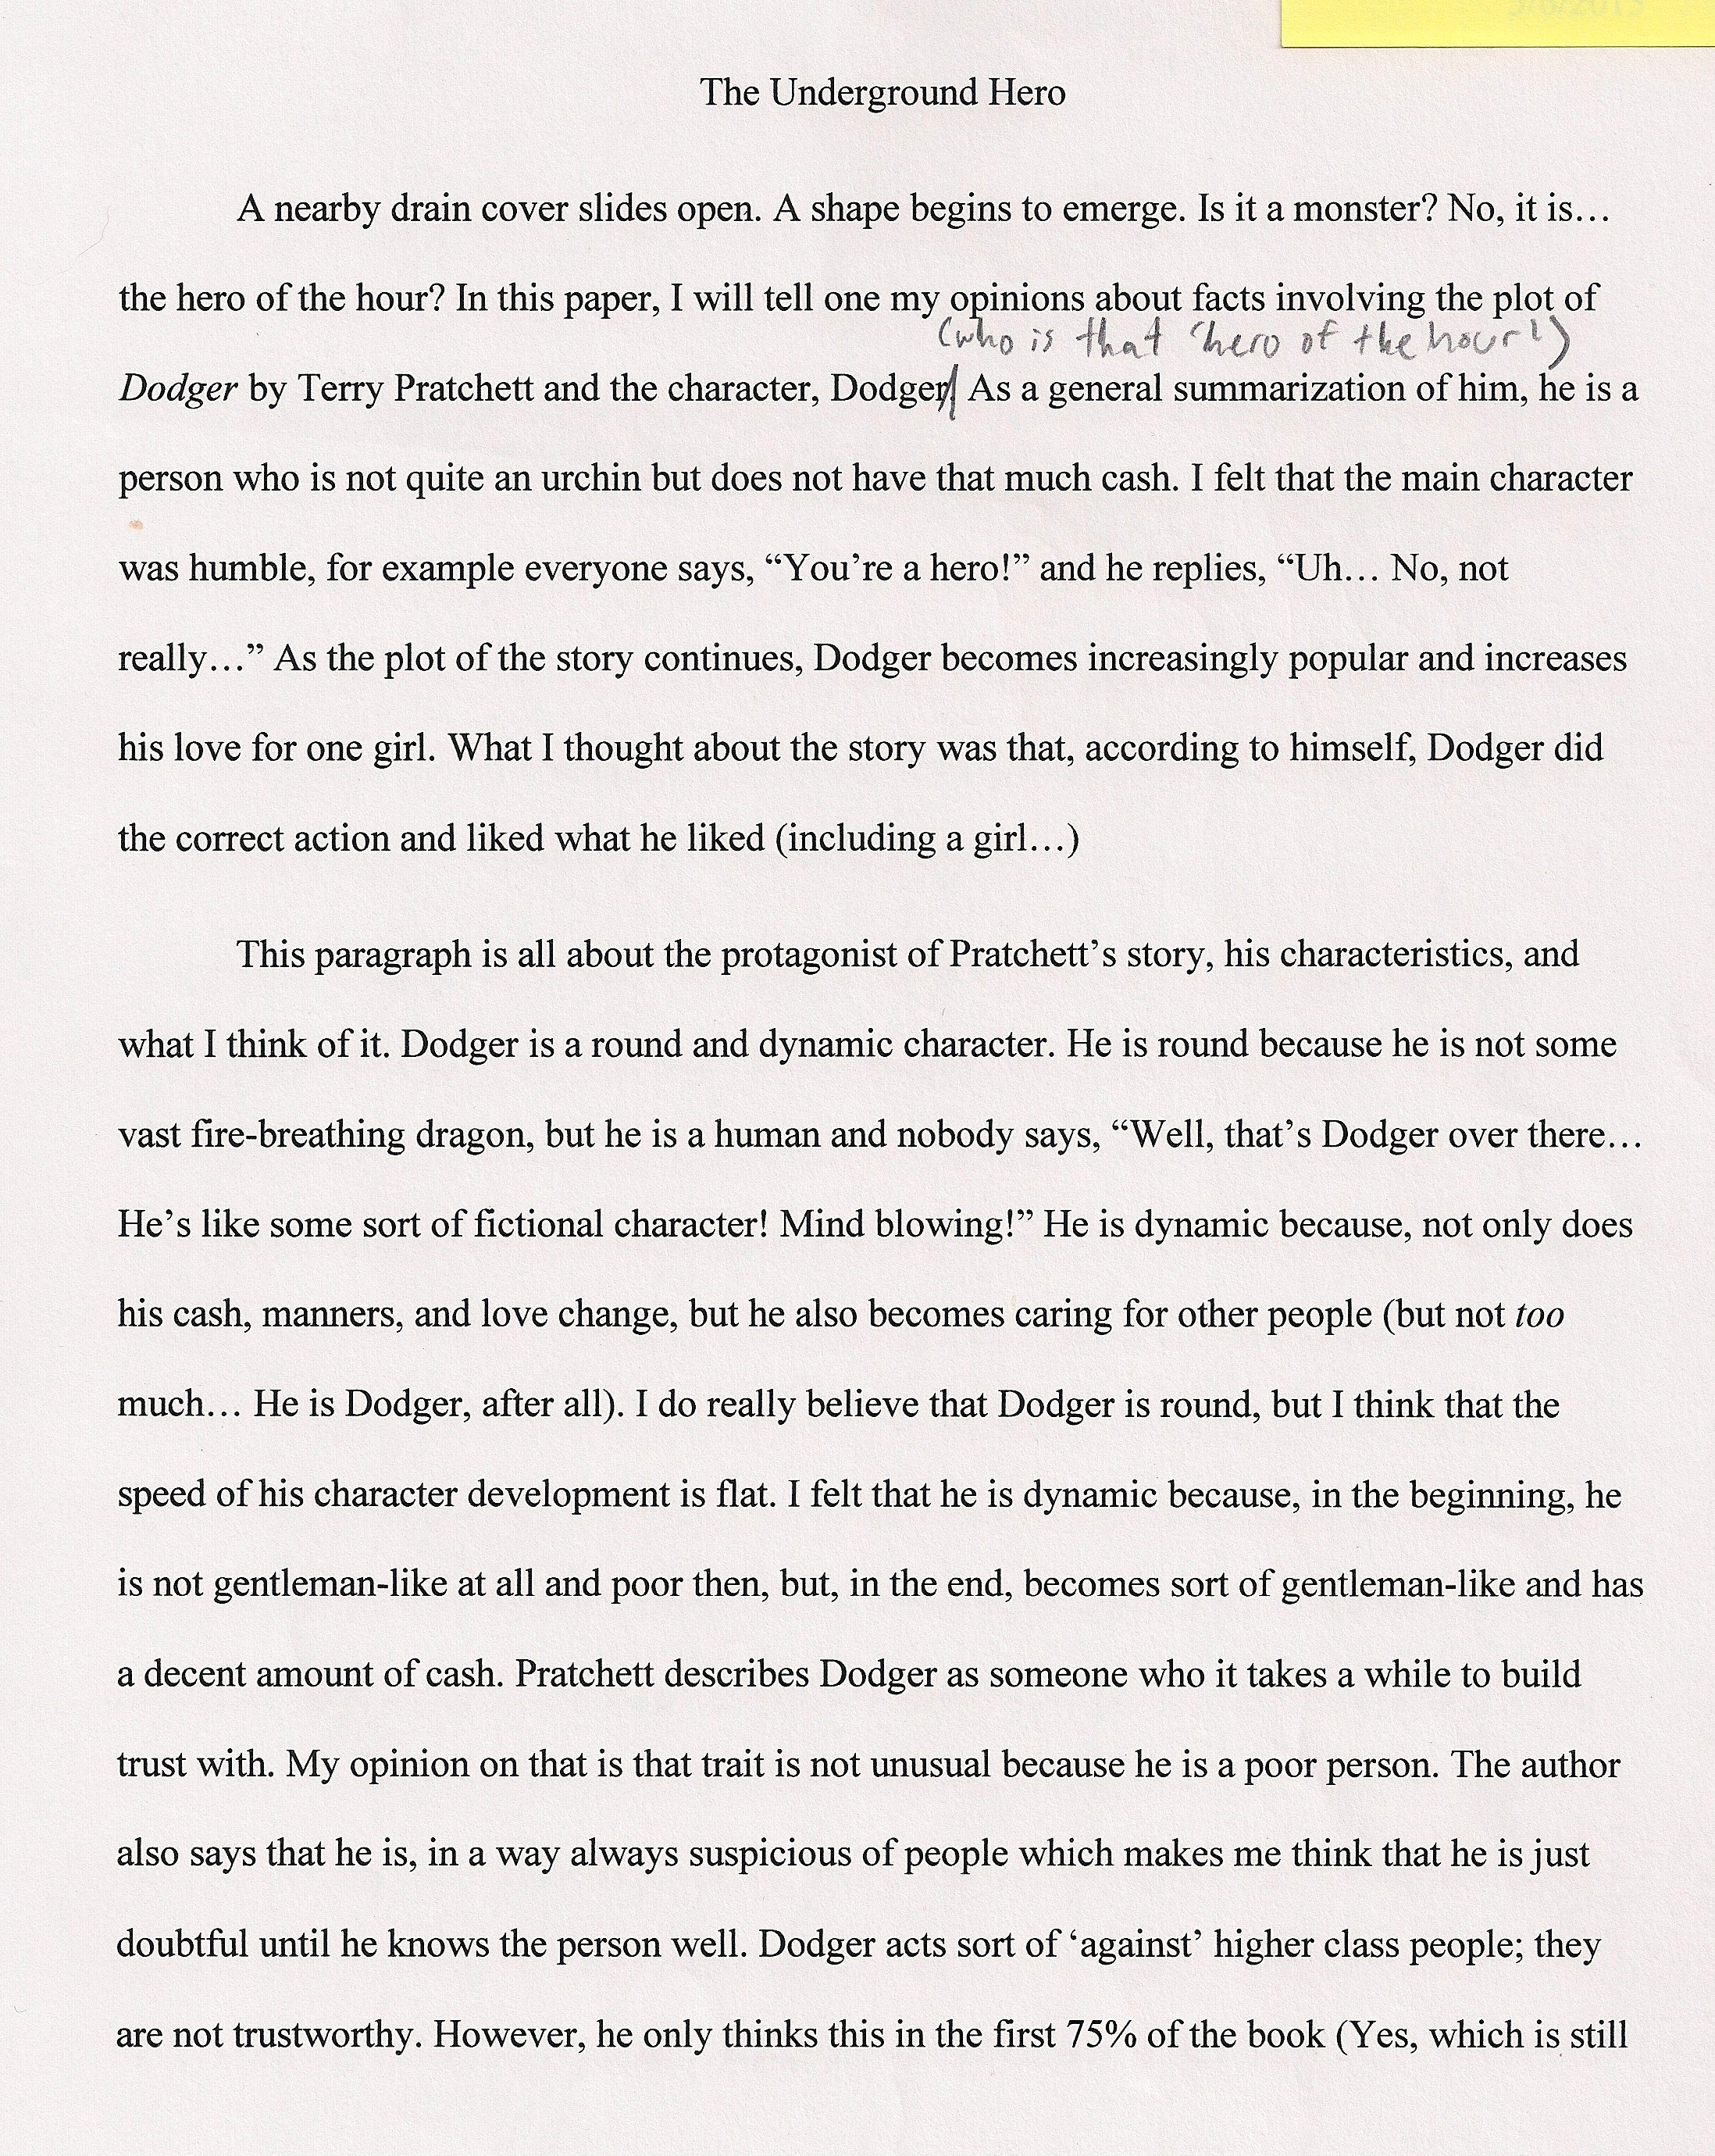 002 The Underground Hero Essay Example Wondrous My In History With Outline Favourite Salman Khan English National Full